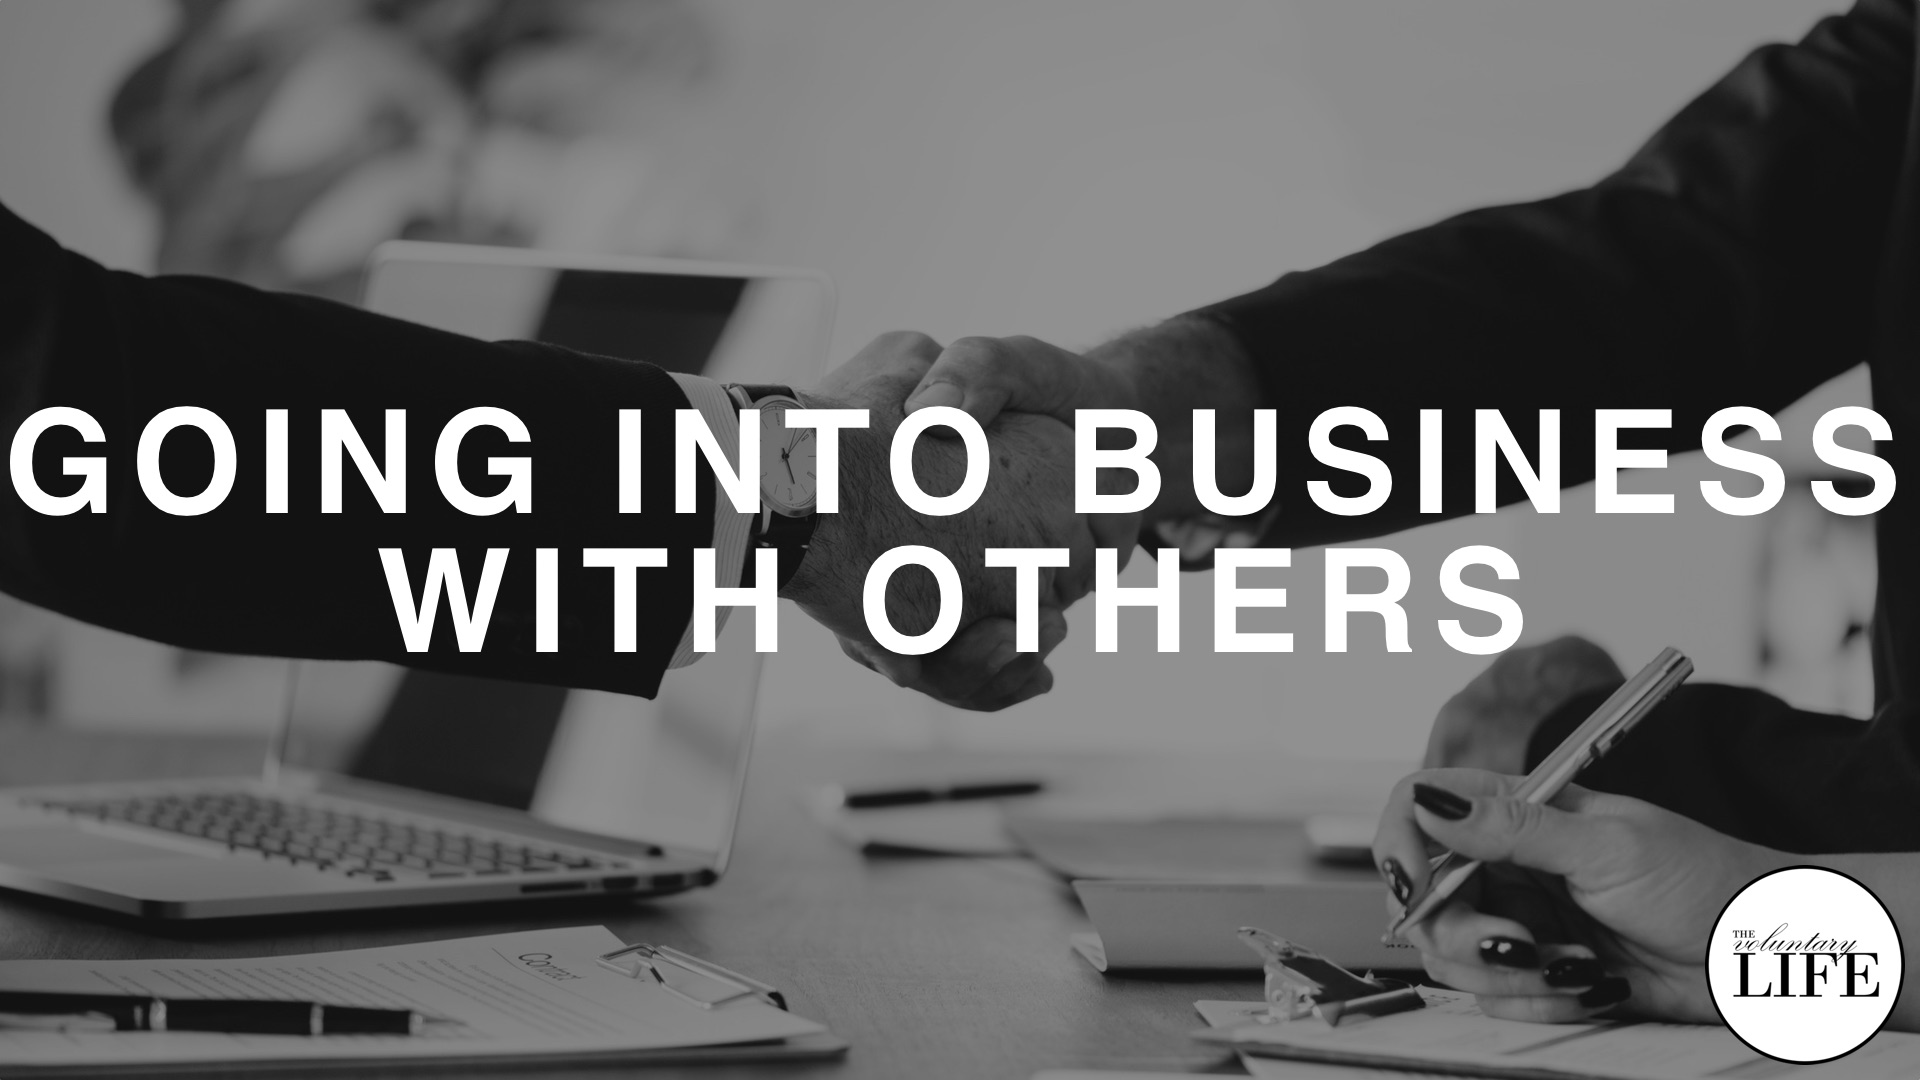 78 Entrepreneurship Part 10: Going Into Business With Others